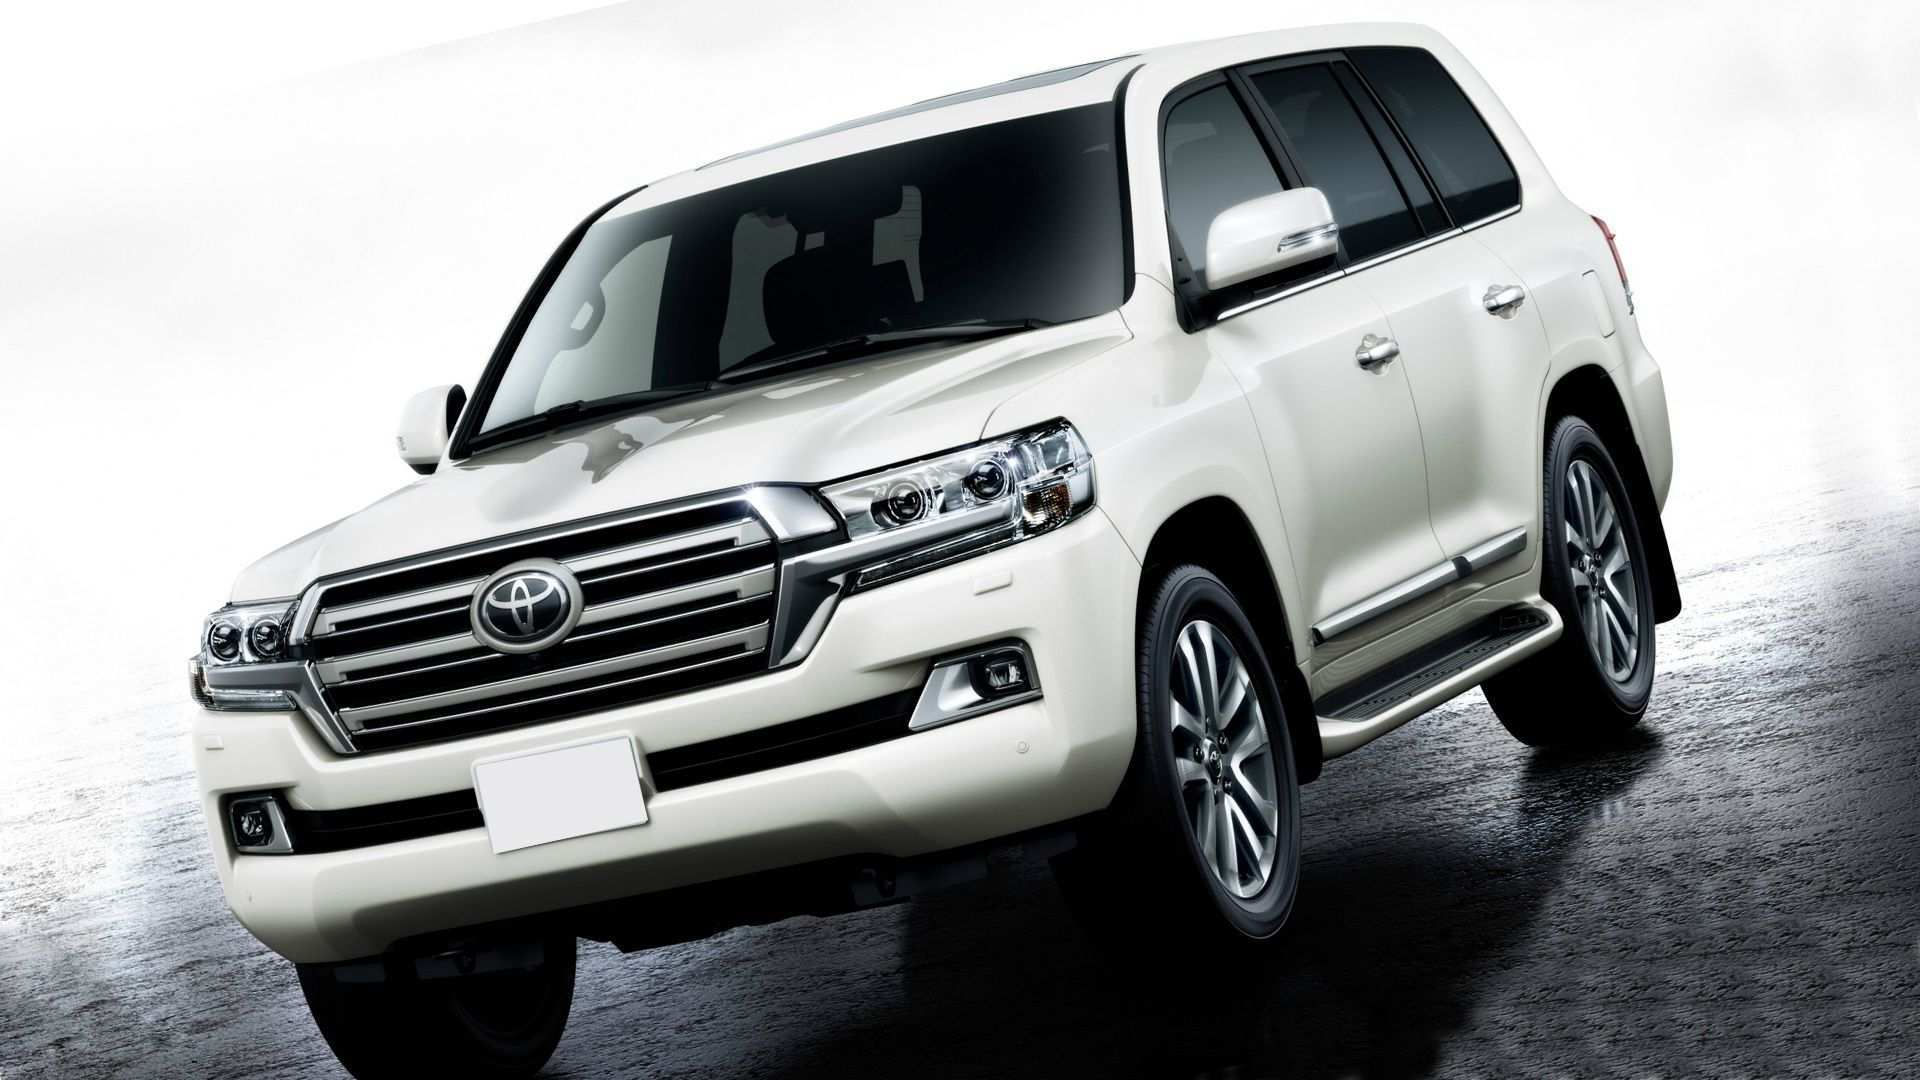 68 Great 2019 Toyota Land Cruiser 200 Interior for 2019 Toyota Land Cruiser 200